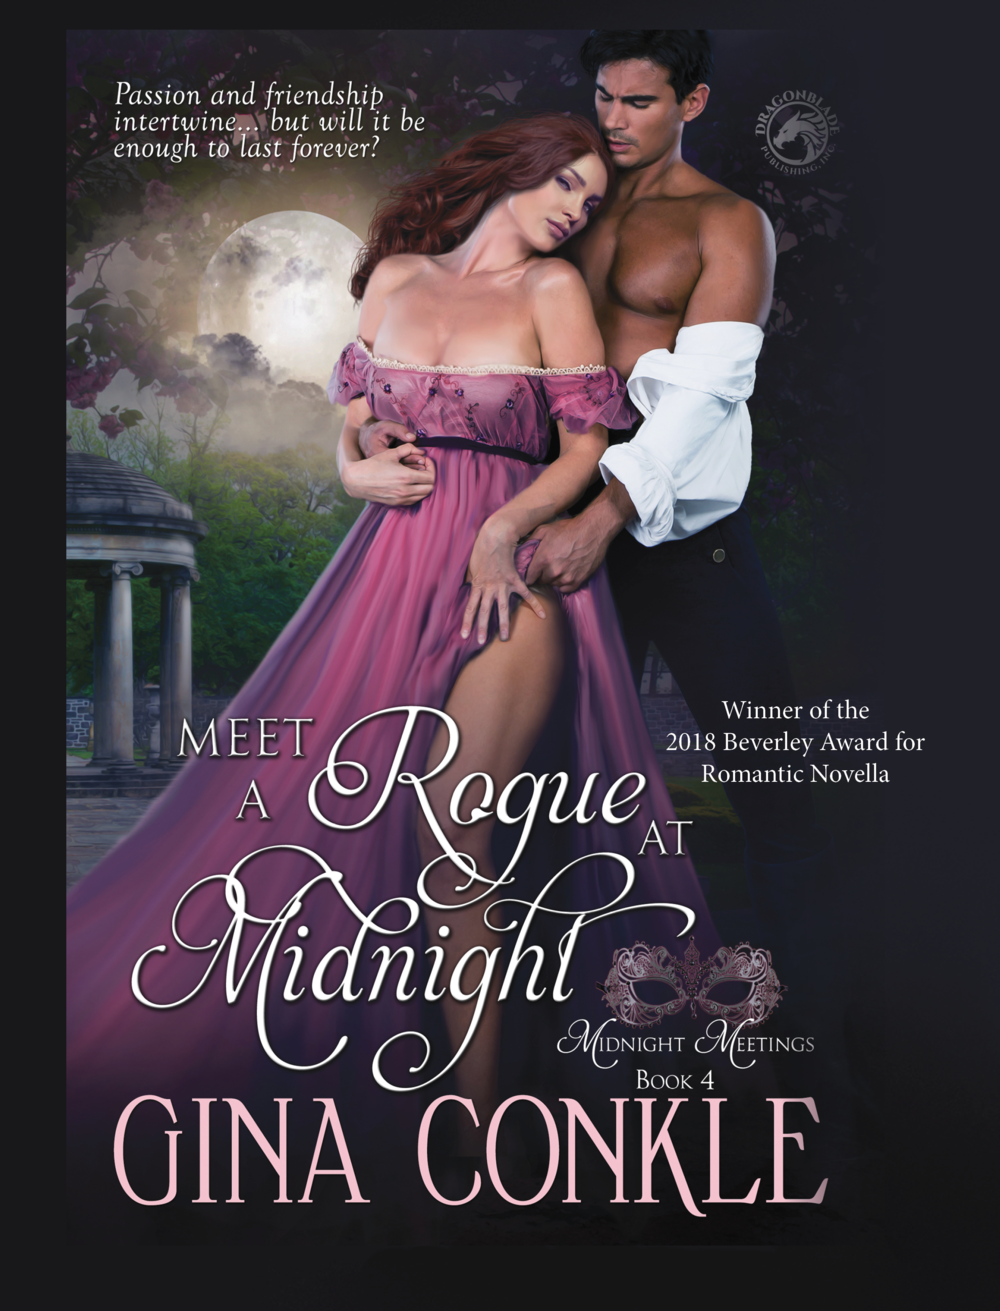 Gina Conkle Rogue Ad4 fog.png